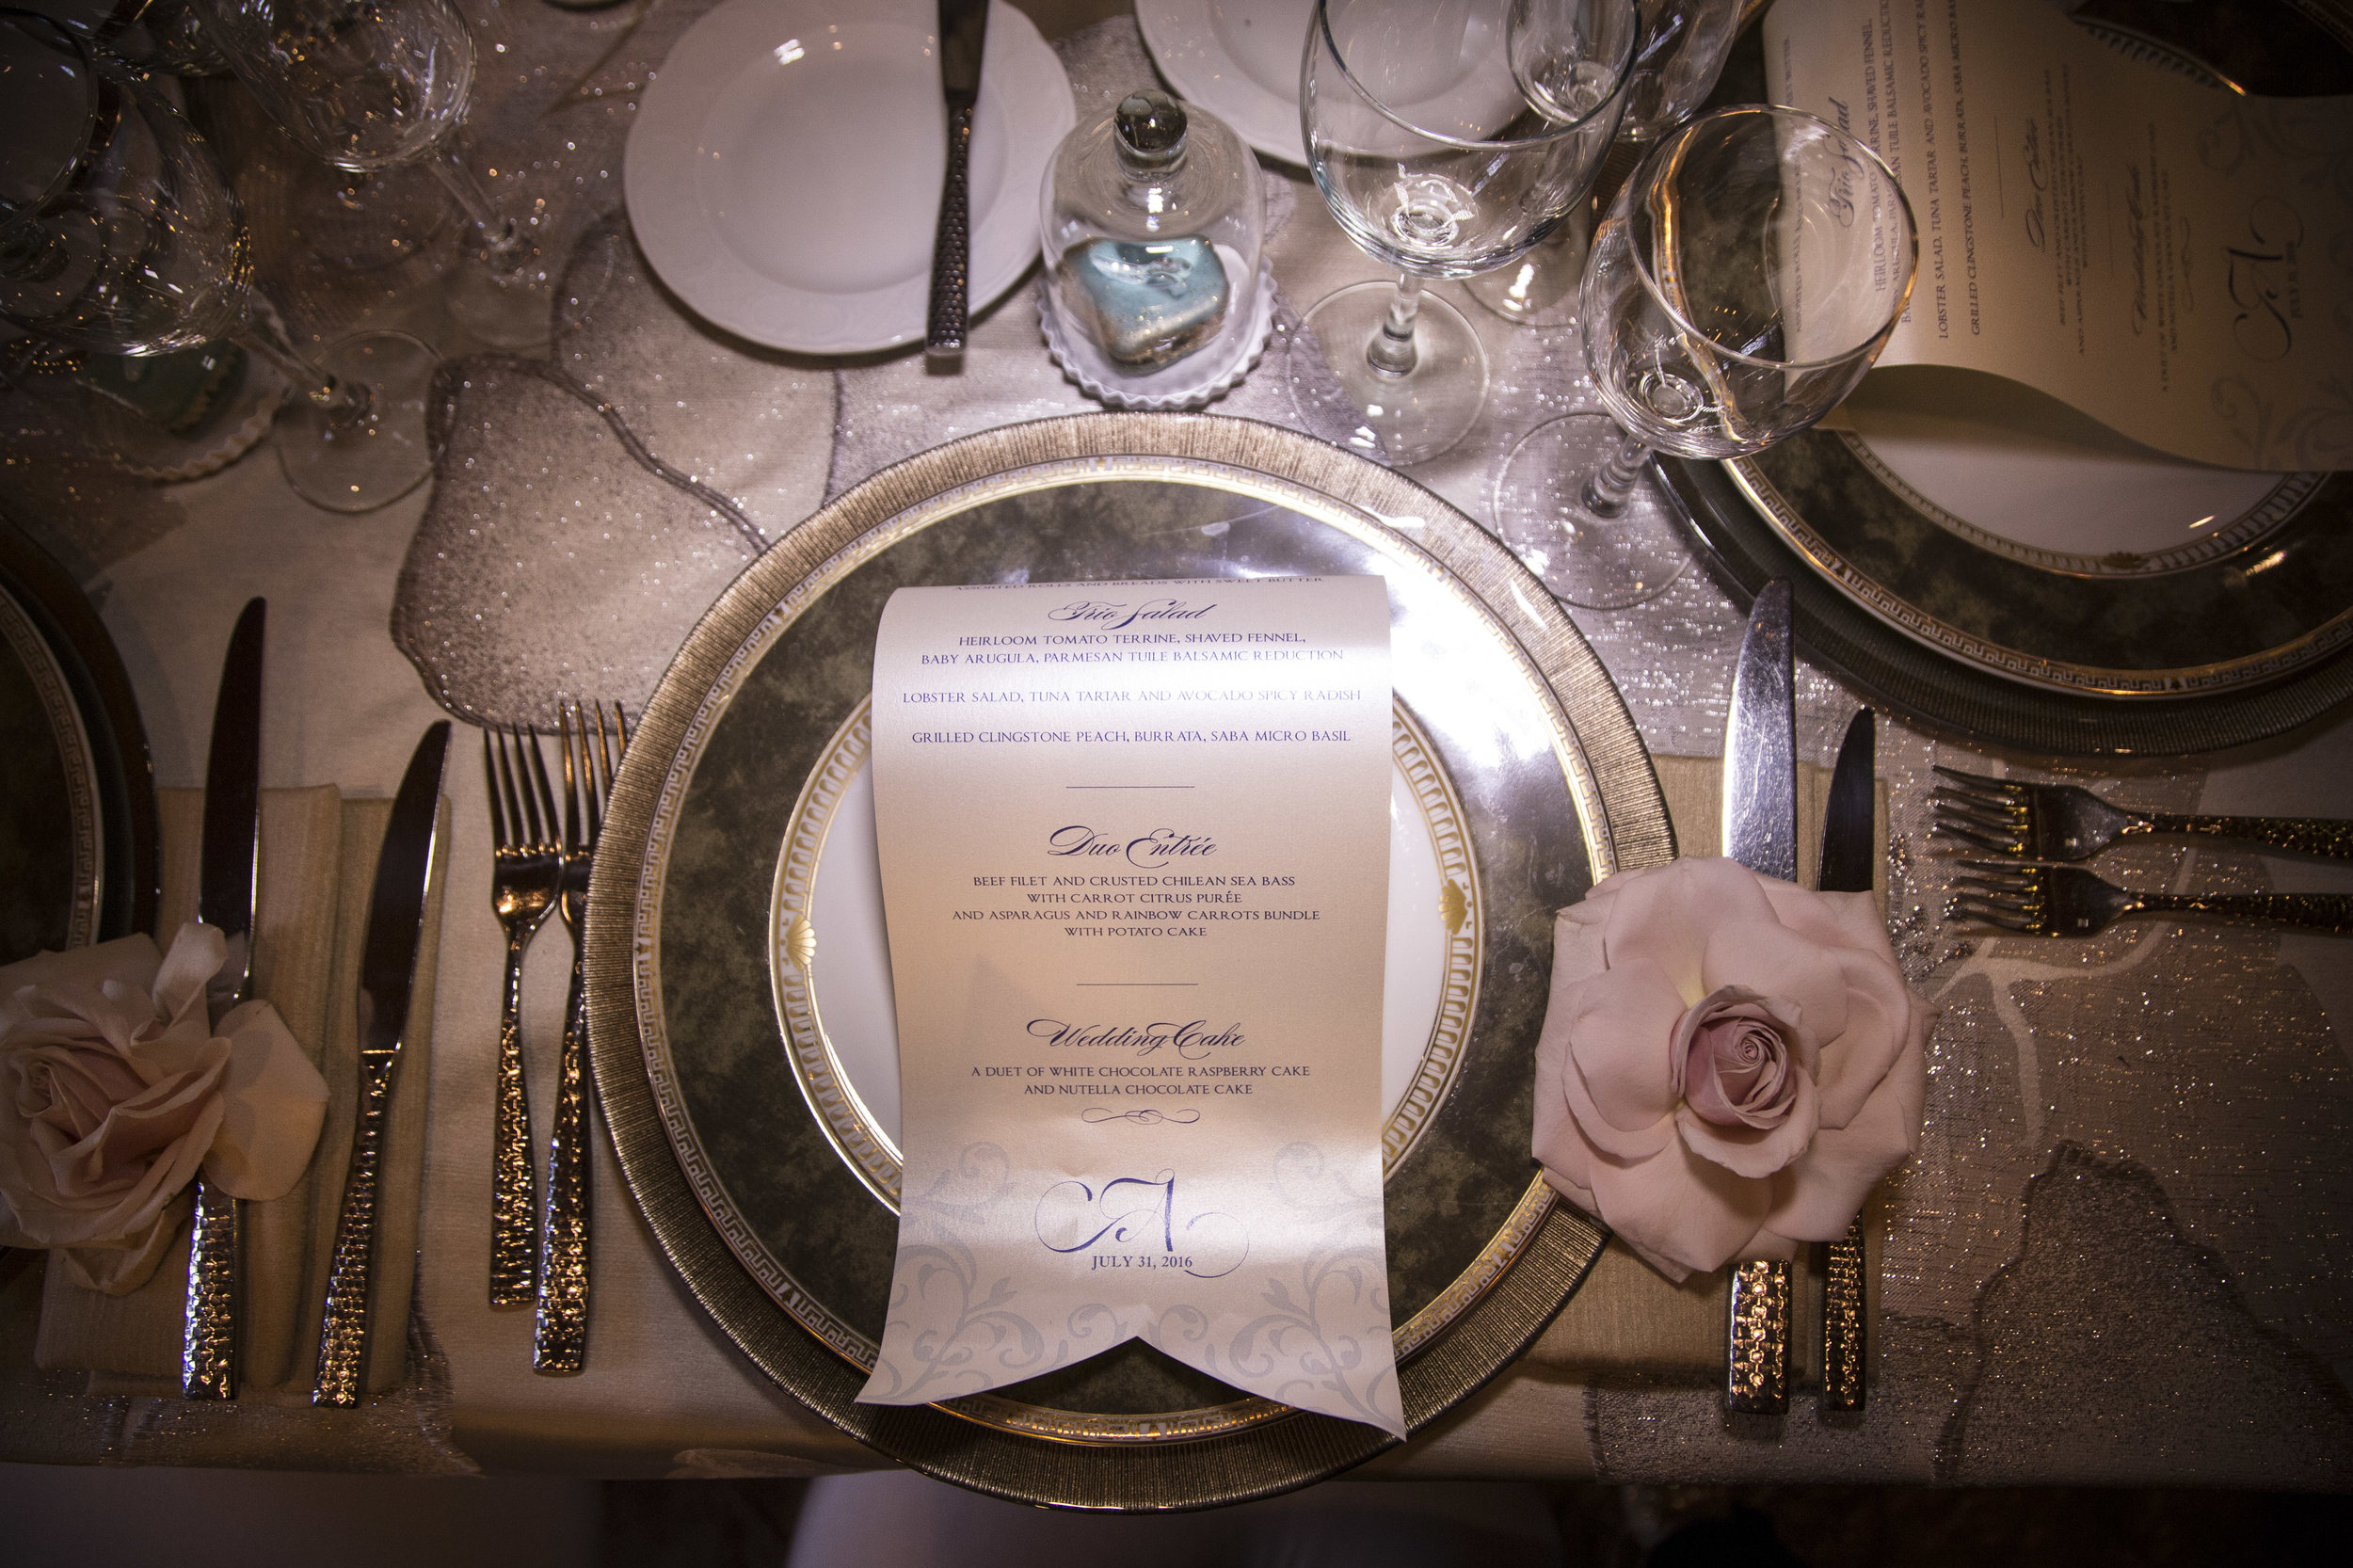 Luxury Place Setting for Castle wedding featuring a scrolled menu, embroidered linens, rose accent, and individual glass slipper favor. Luxury Las Vegas Wedding Planner Andrea Eppolito. Image by AltF Photography.